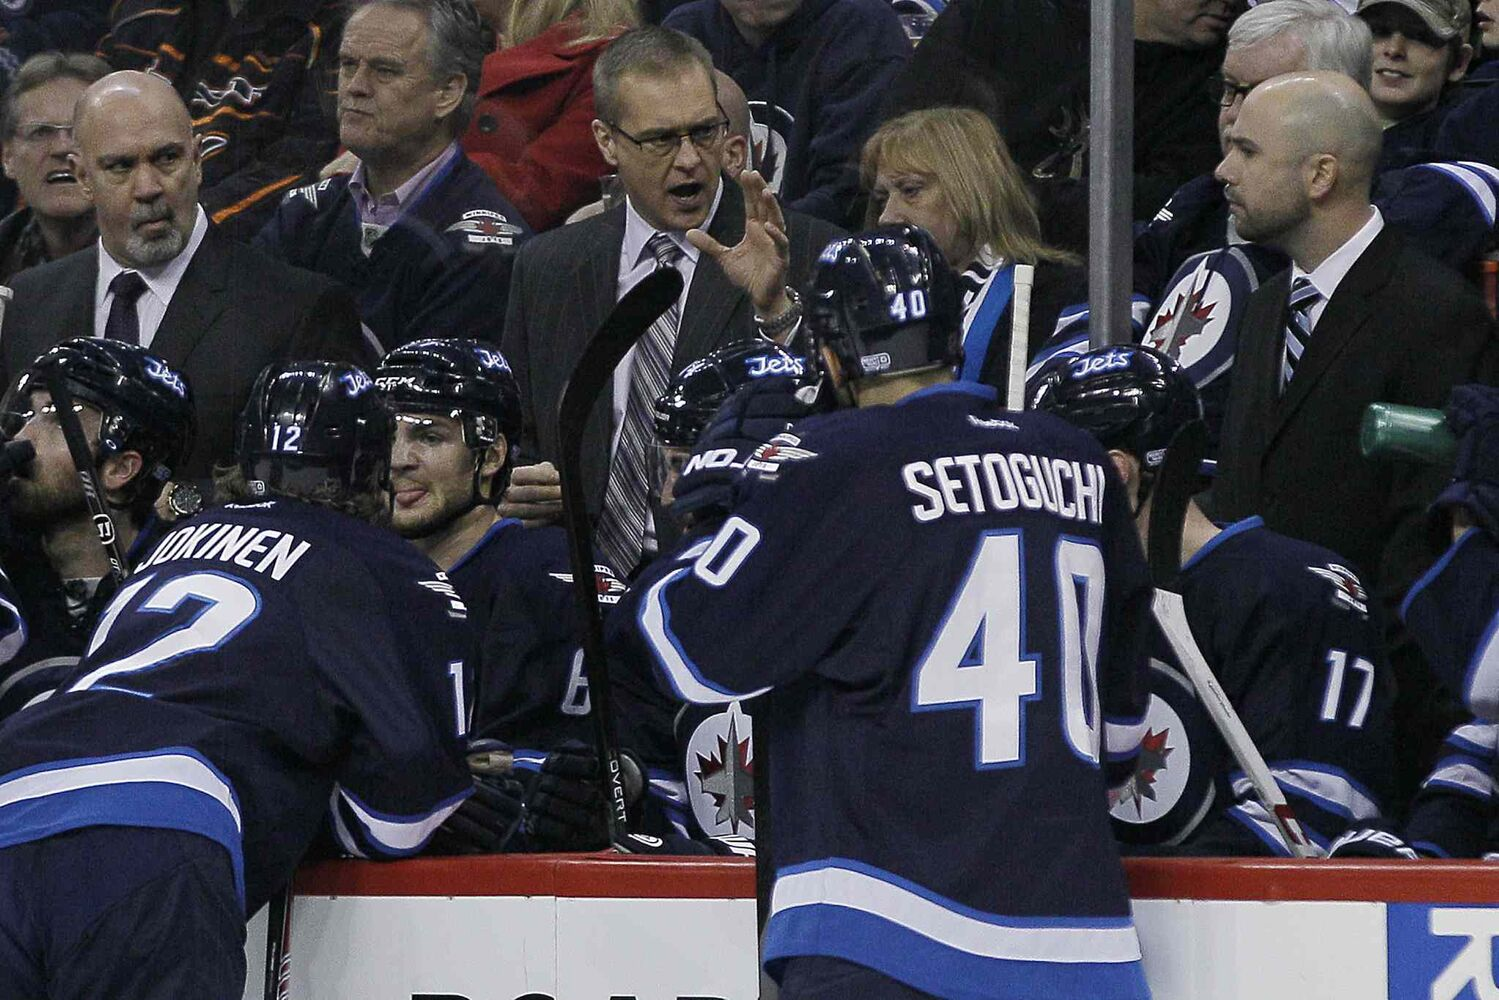 Winnipeg Jets' head coach Paul Maurice talks to his players during the second period of Tuesday's game in Winnipeg.